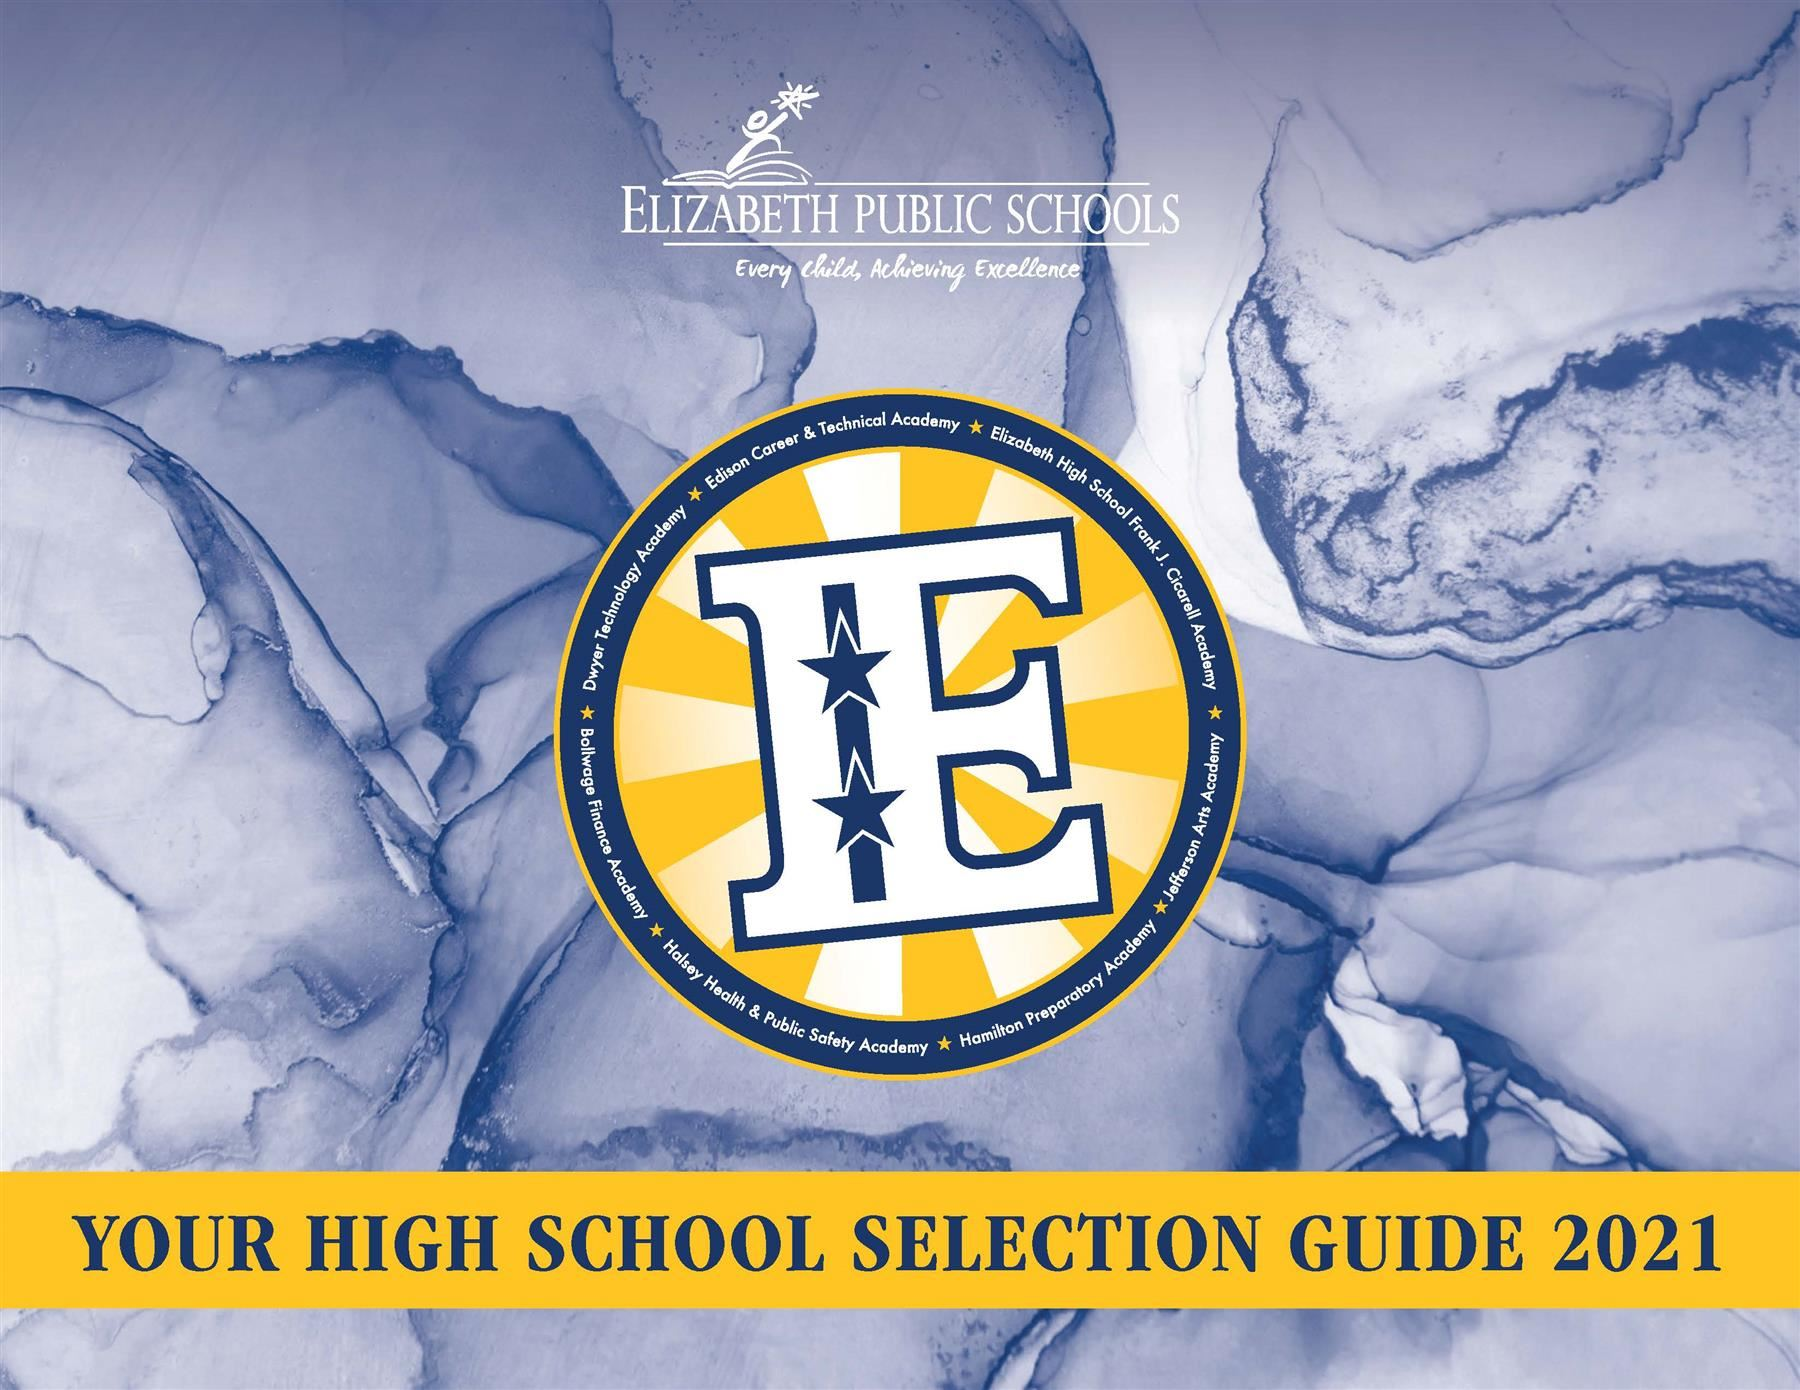 High Schools Selection Guide Brochure 2021